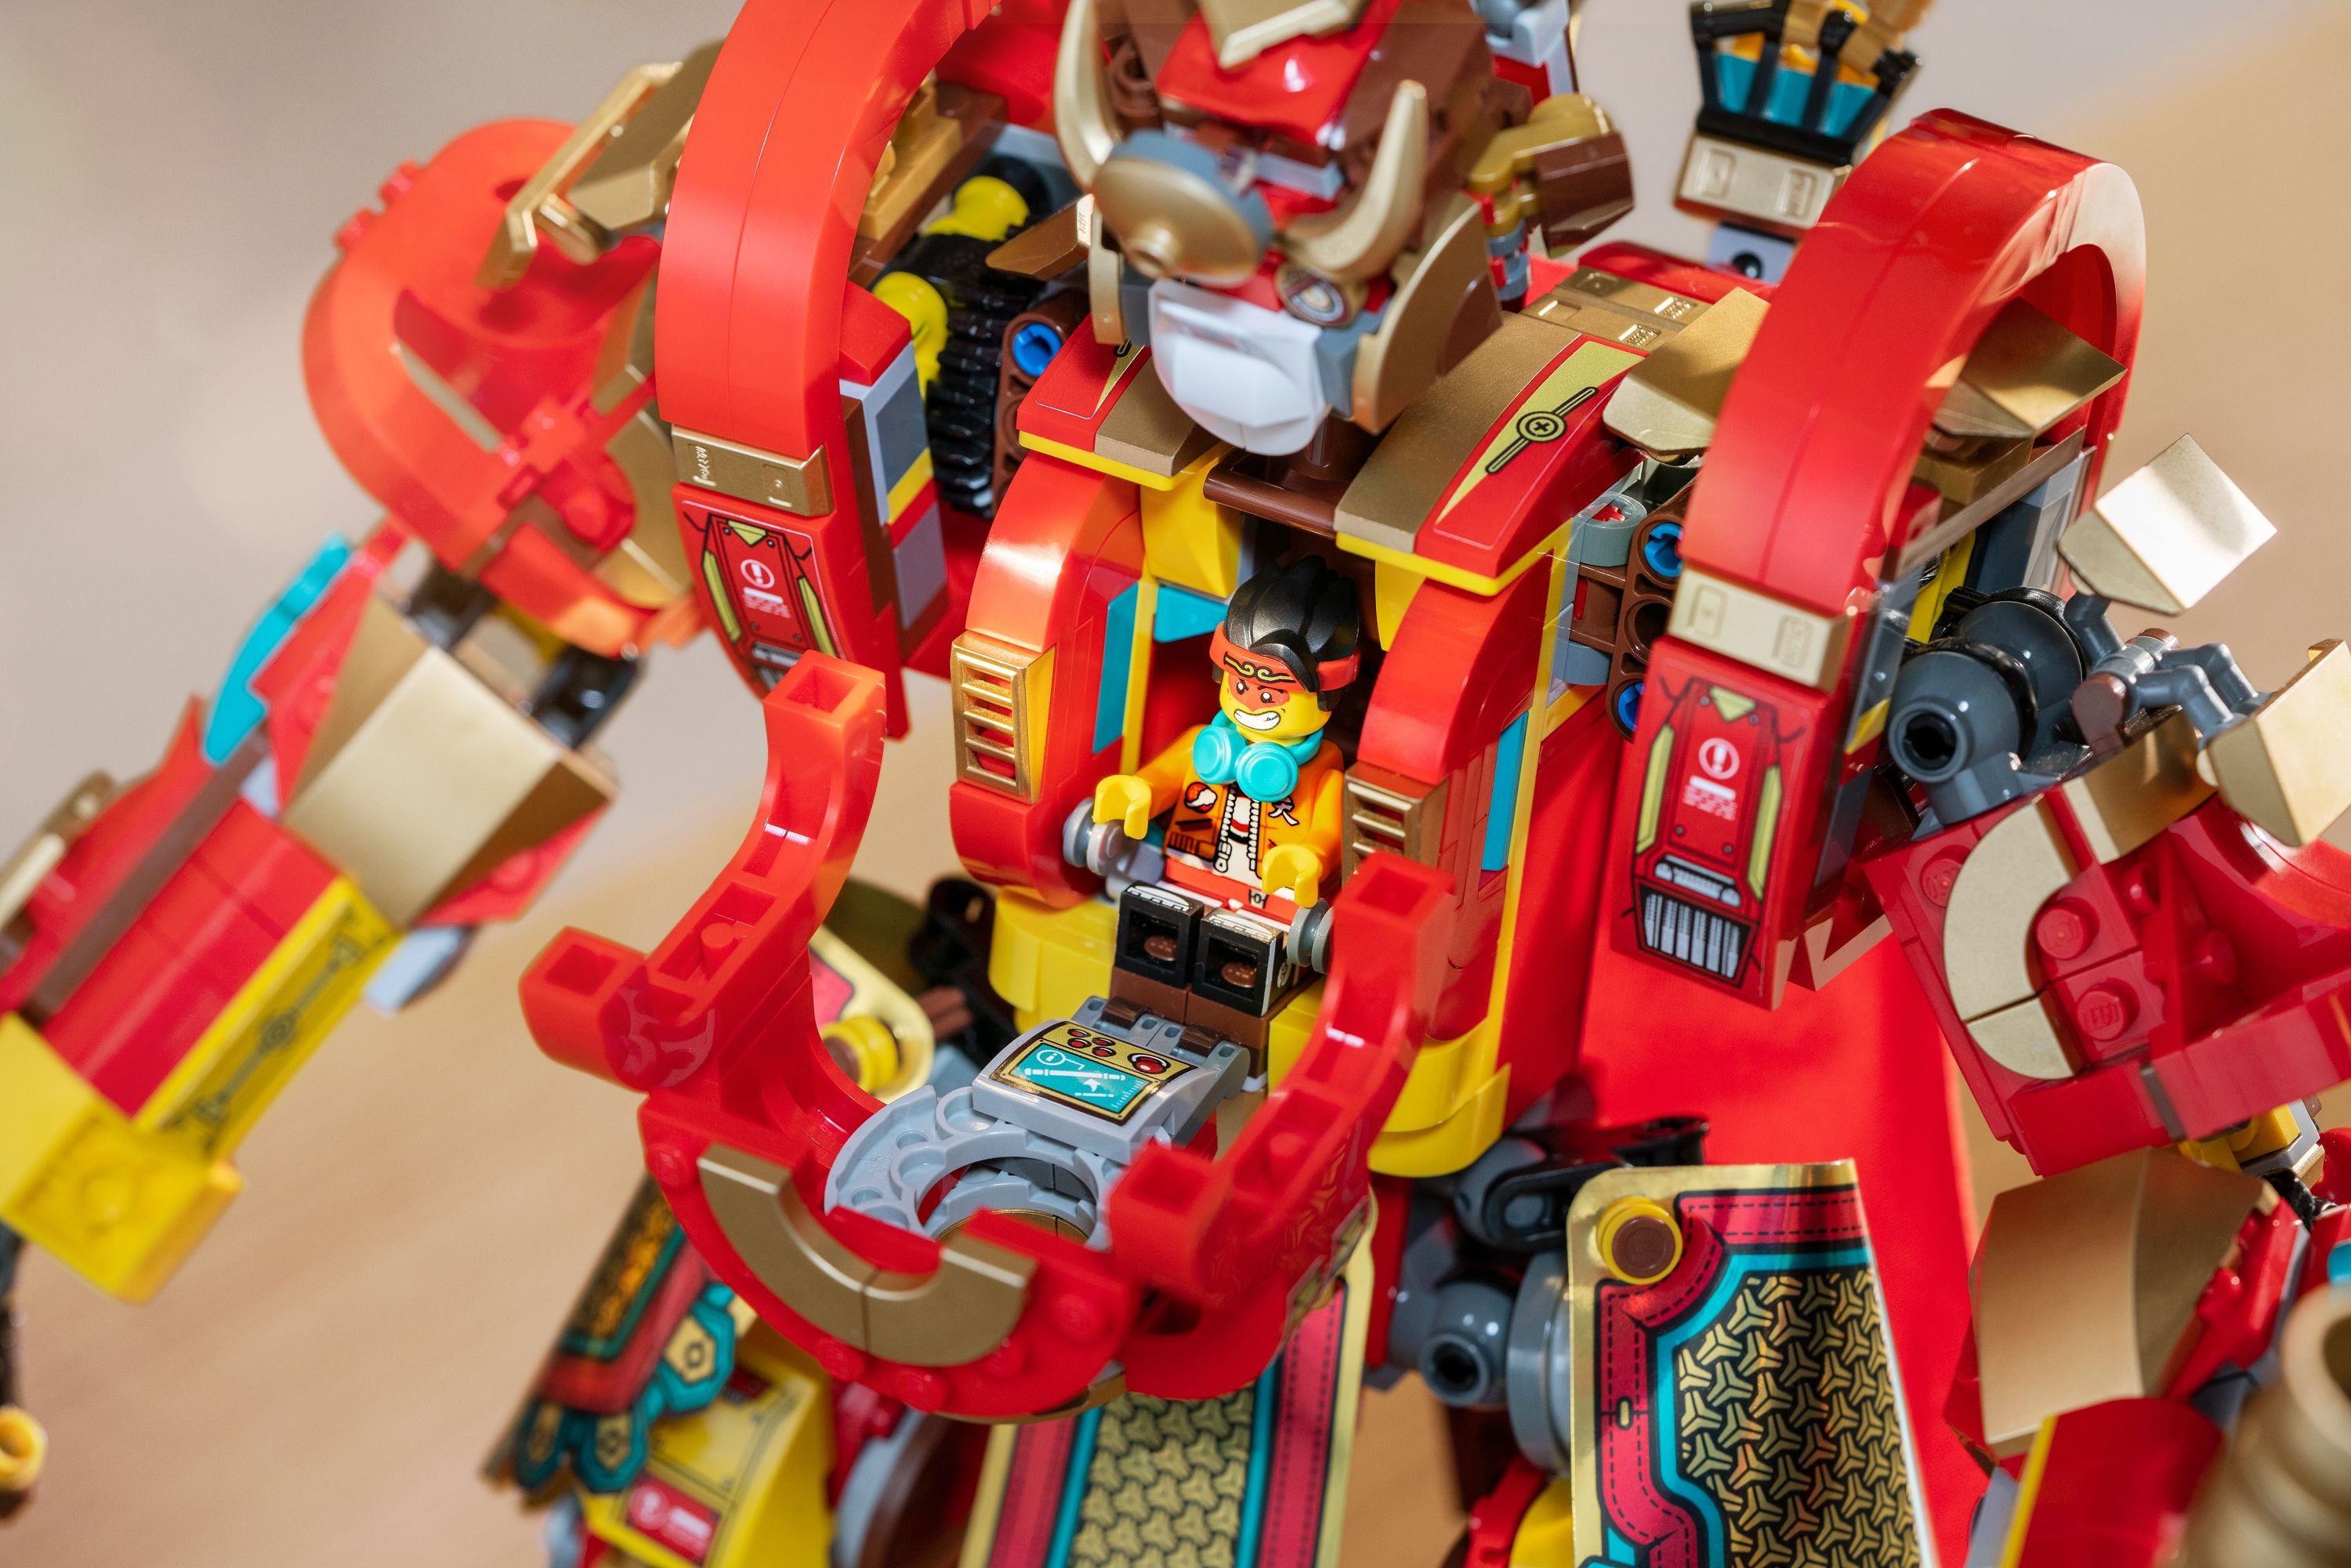 LEGO Monkie Kid 80012 Monkey King Mech LEGO_80012_alt14.jpg